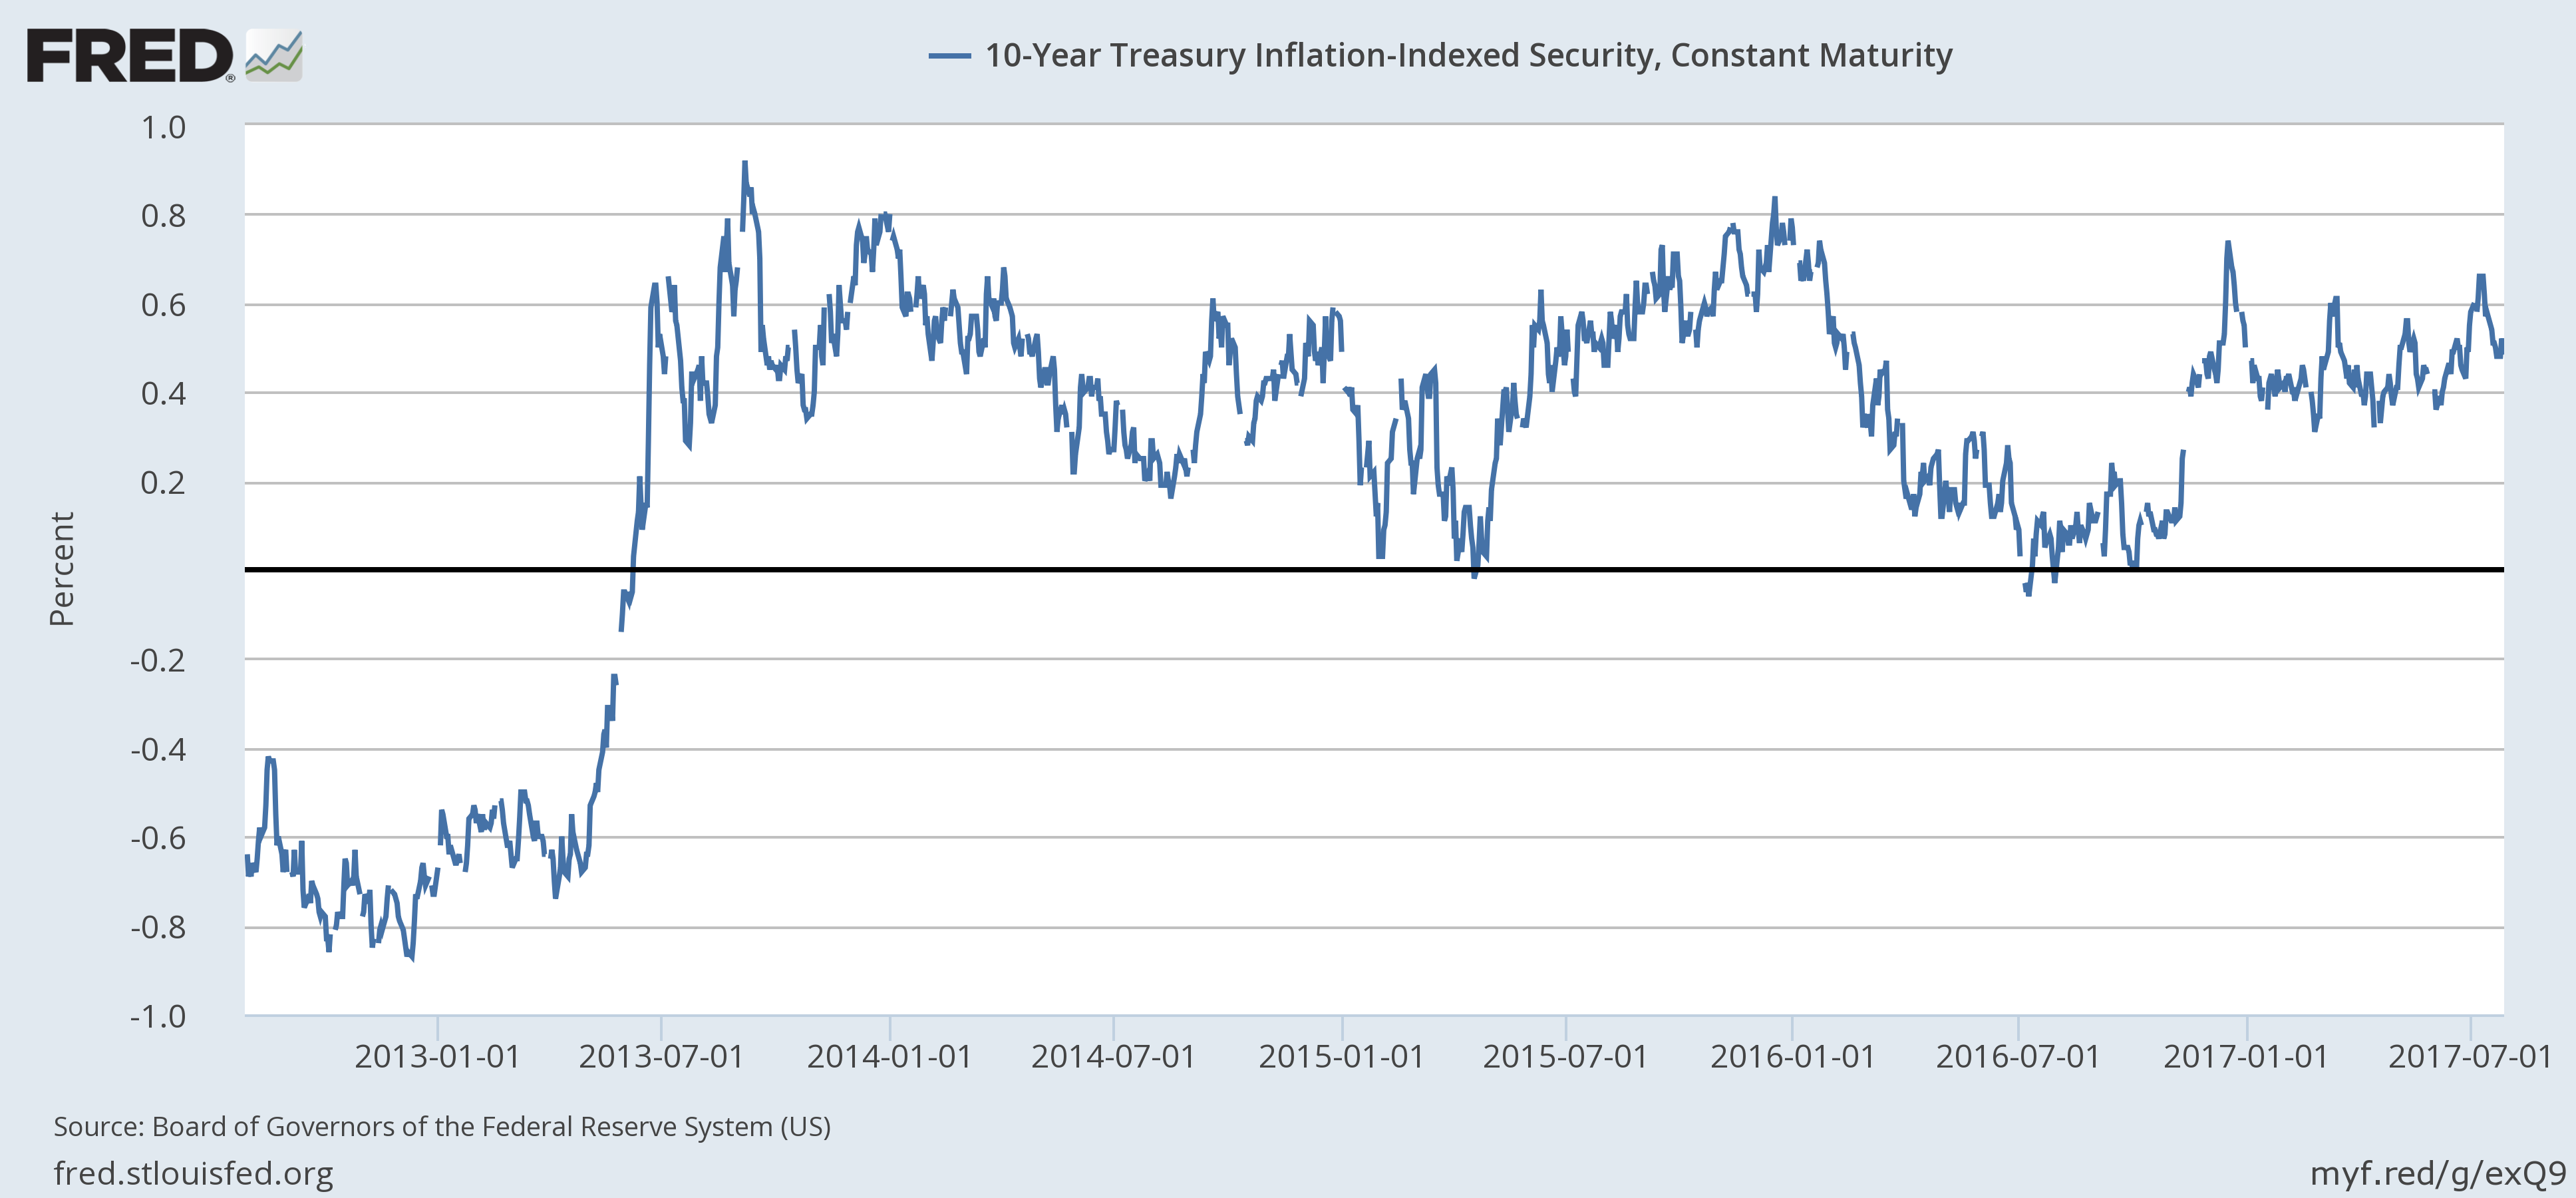 US 10 Year Treasury Inflation-Indexed Security, Jan 2012 - Jul 2017